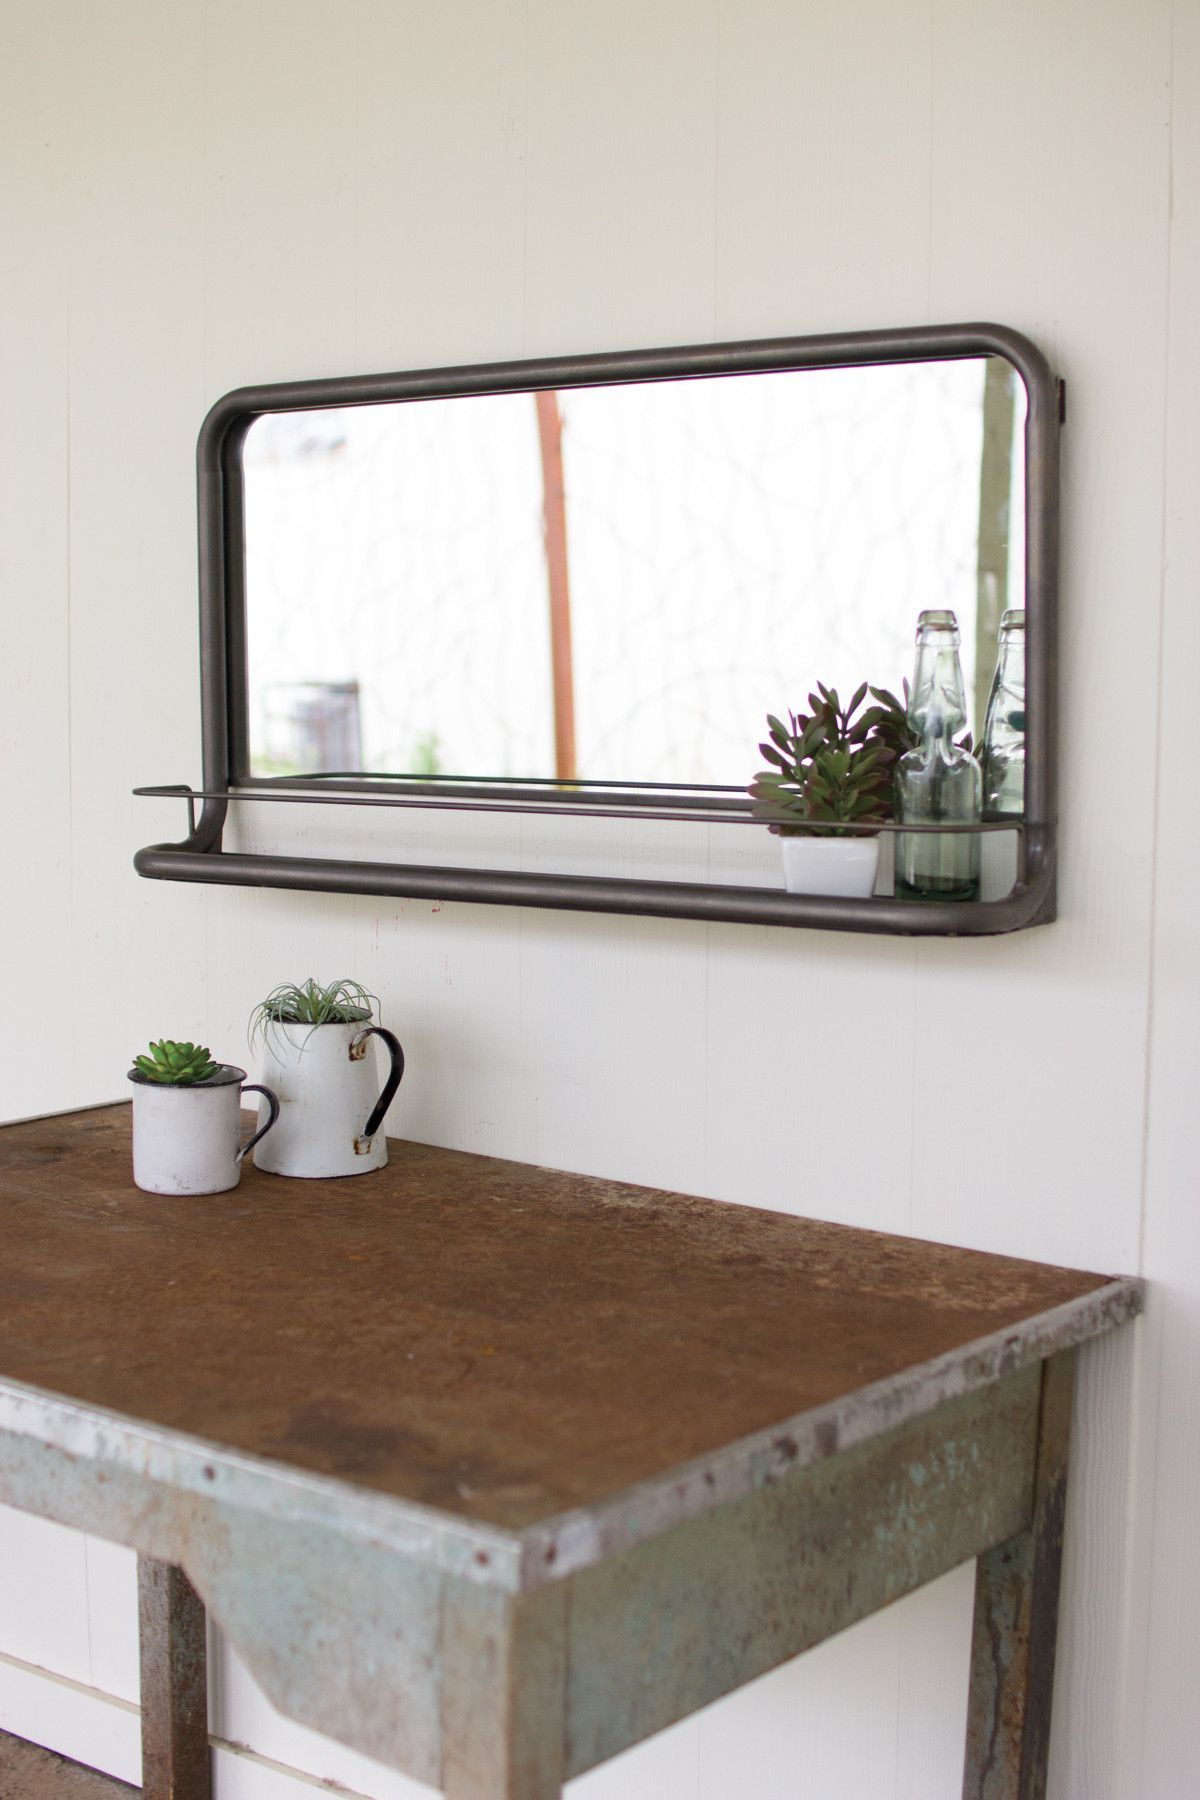 Details This Rectangular Metal Frame Pharmacy Mirror Has A Convenient Shelf For Displaying All